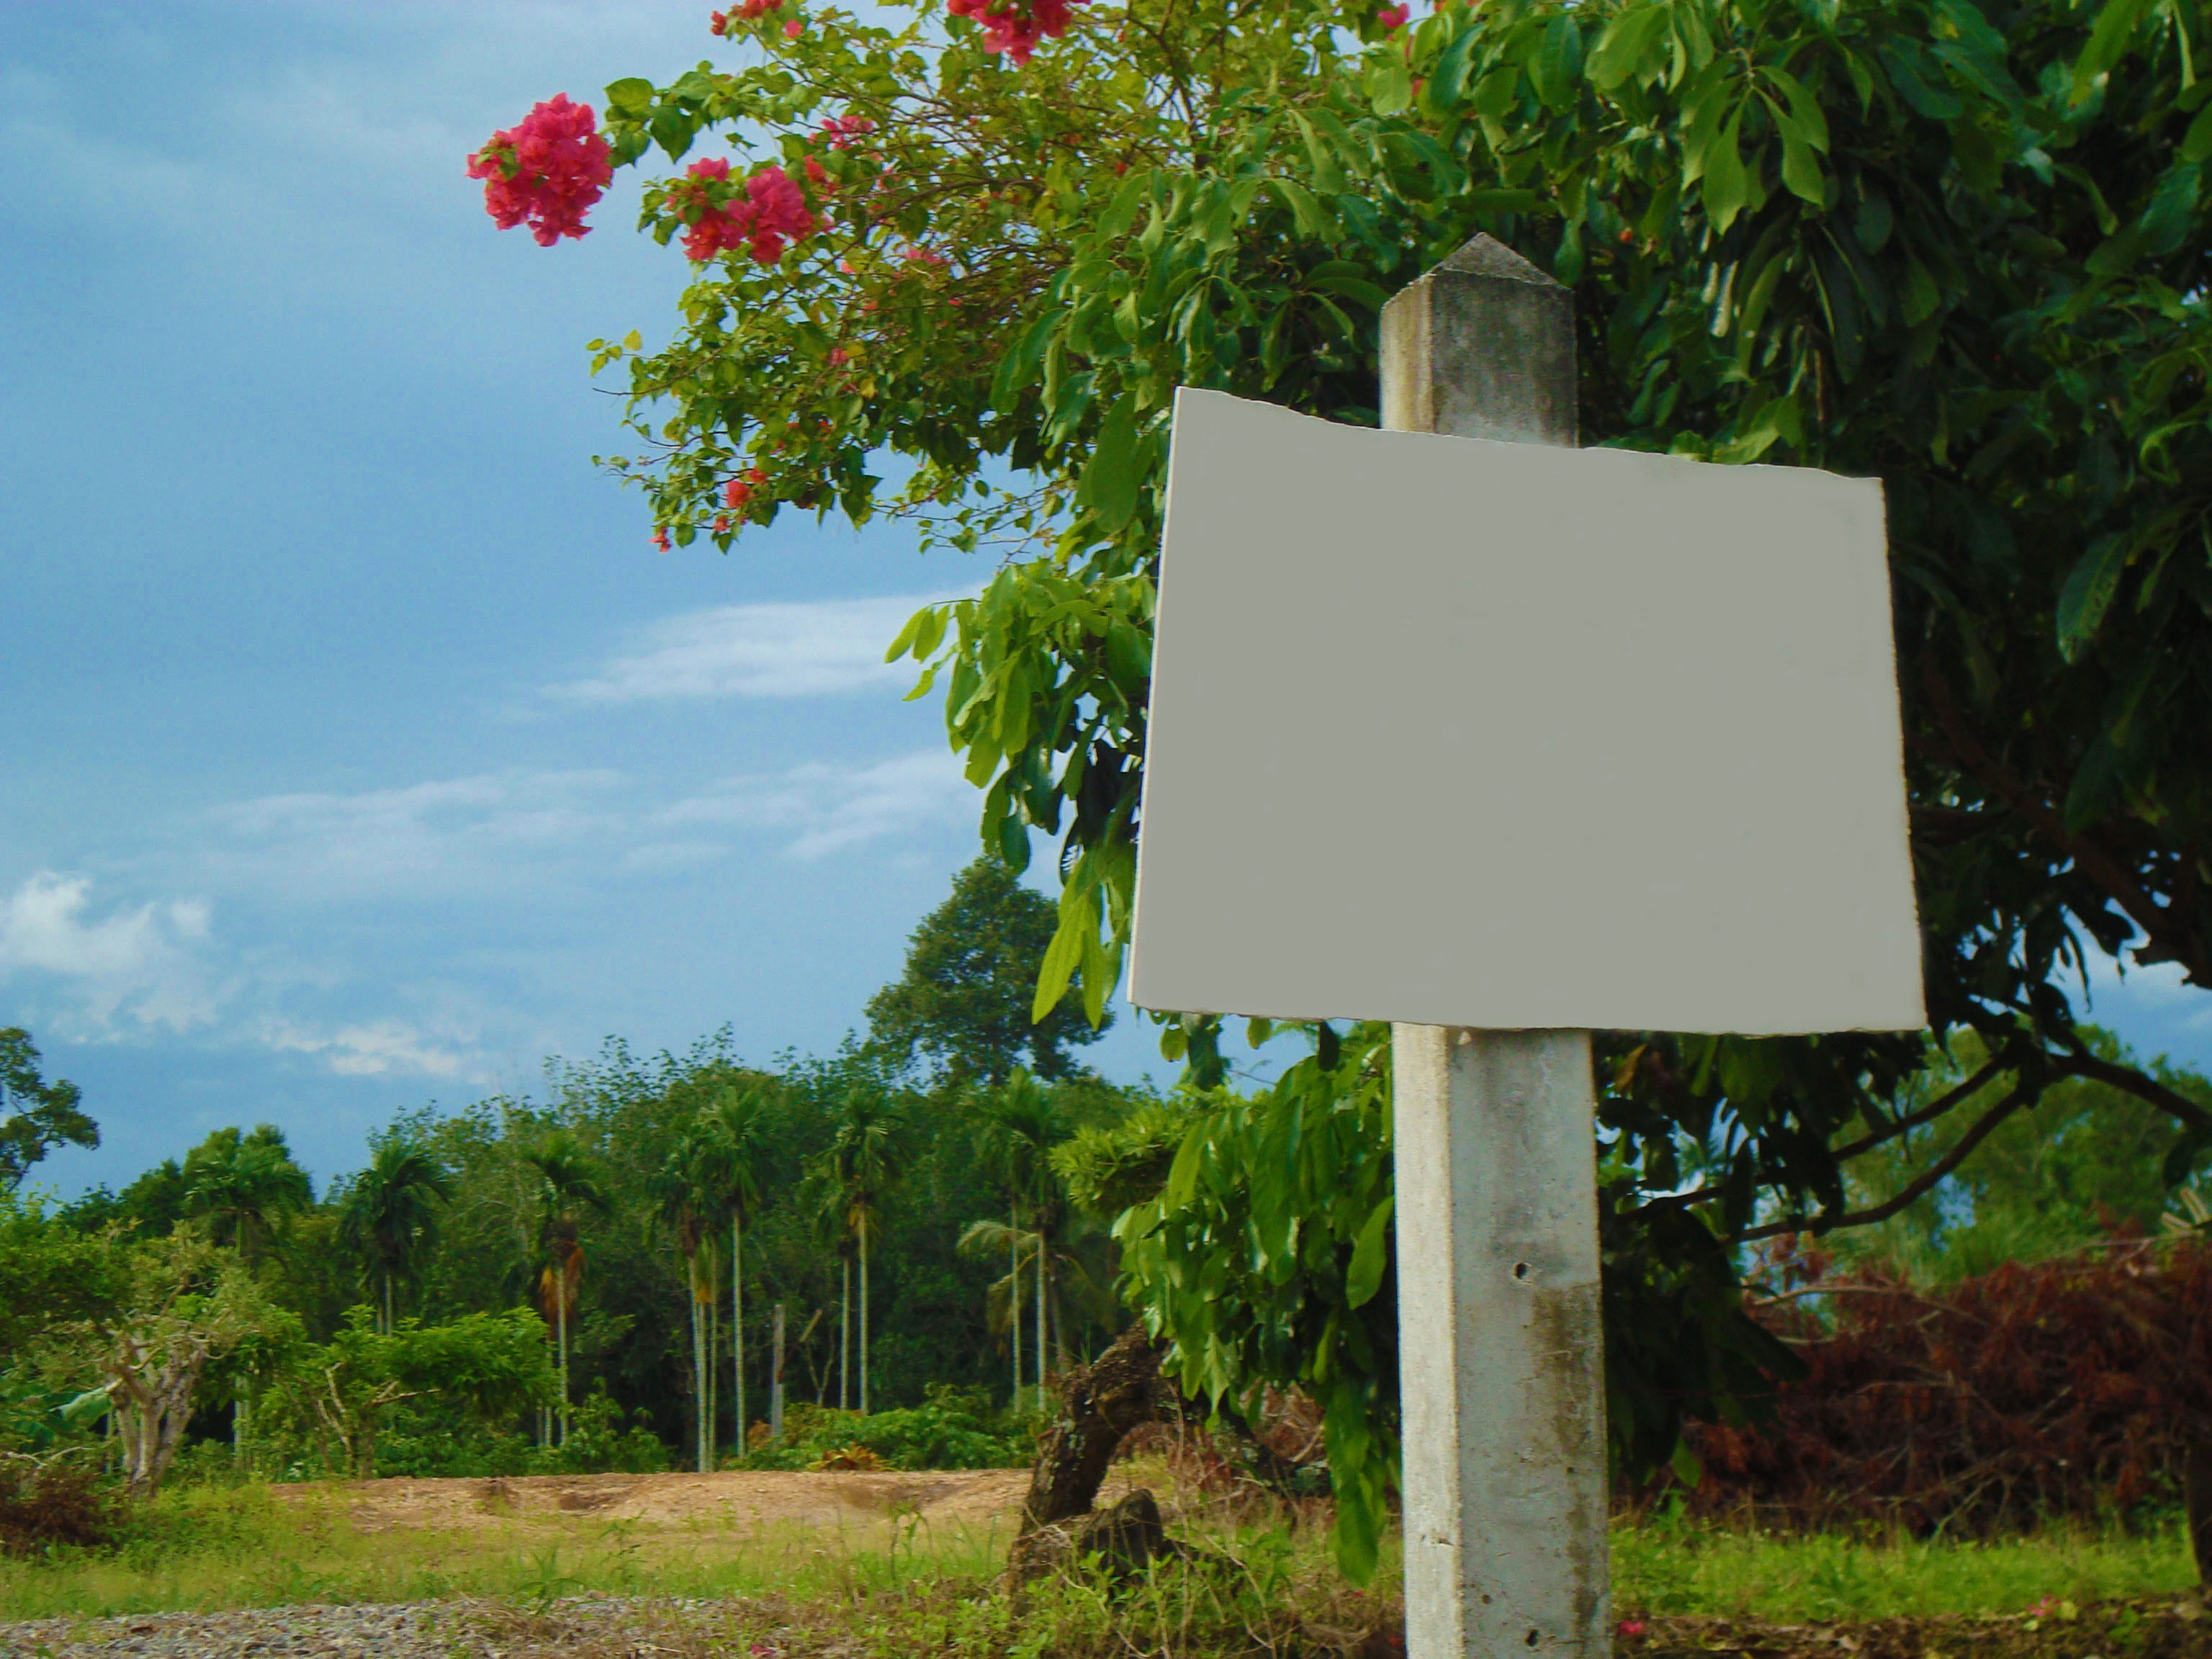 Blank Land For Sale Sign, Area, Notice, Trees, Sign, HQ Photo